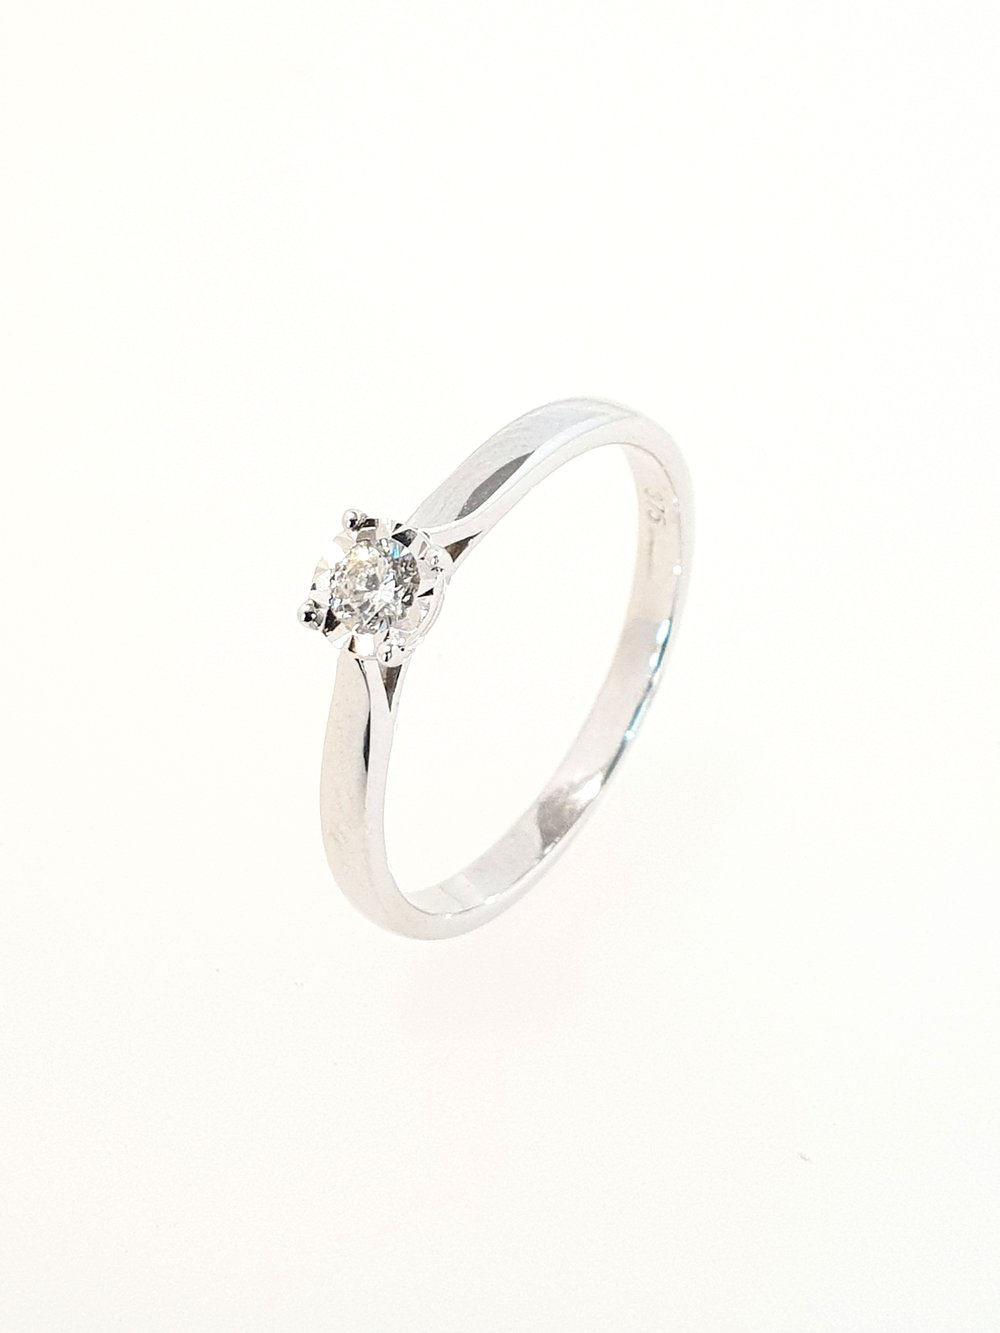 9ct White Gold DIamond Illusion Ring  .05ct  Stock Code: G1955  £400